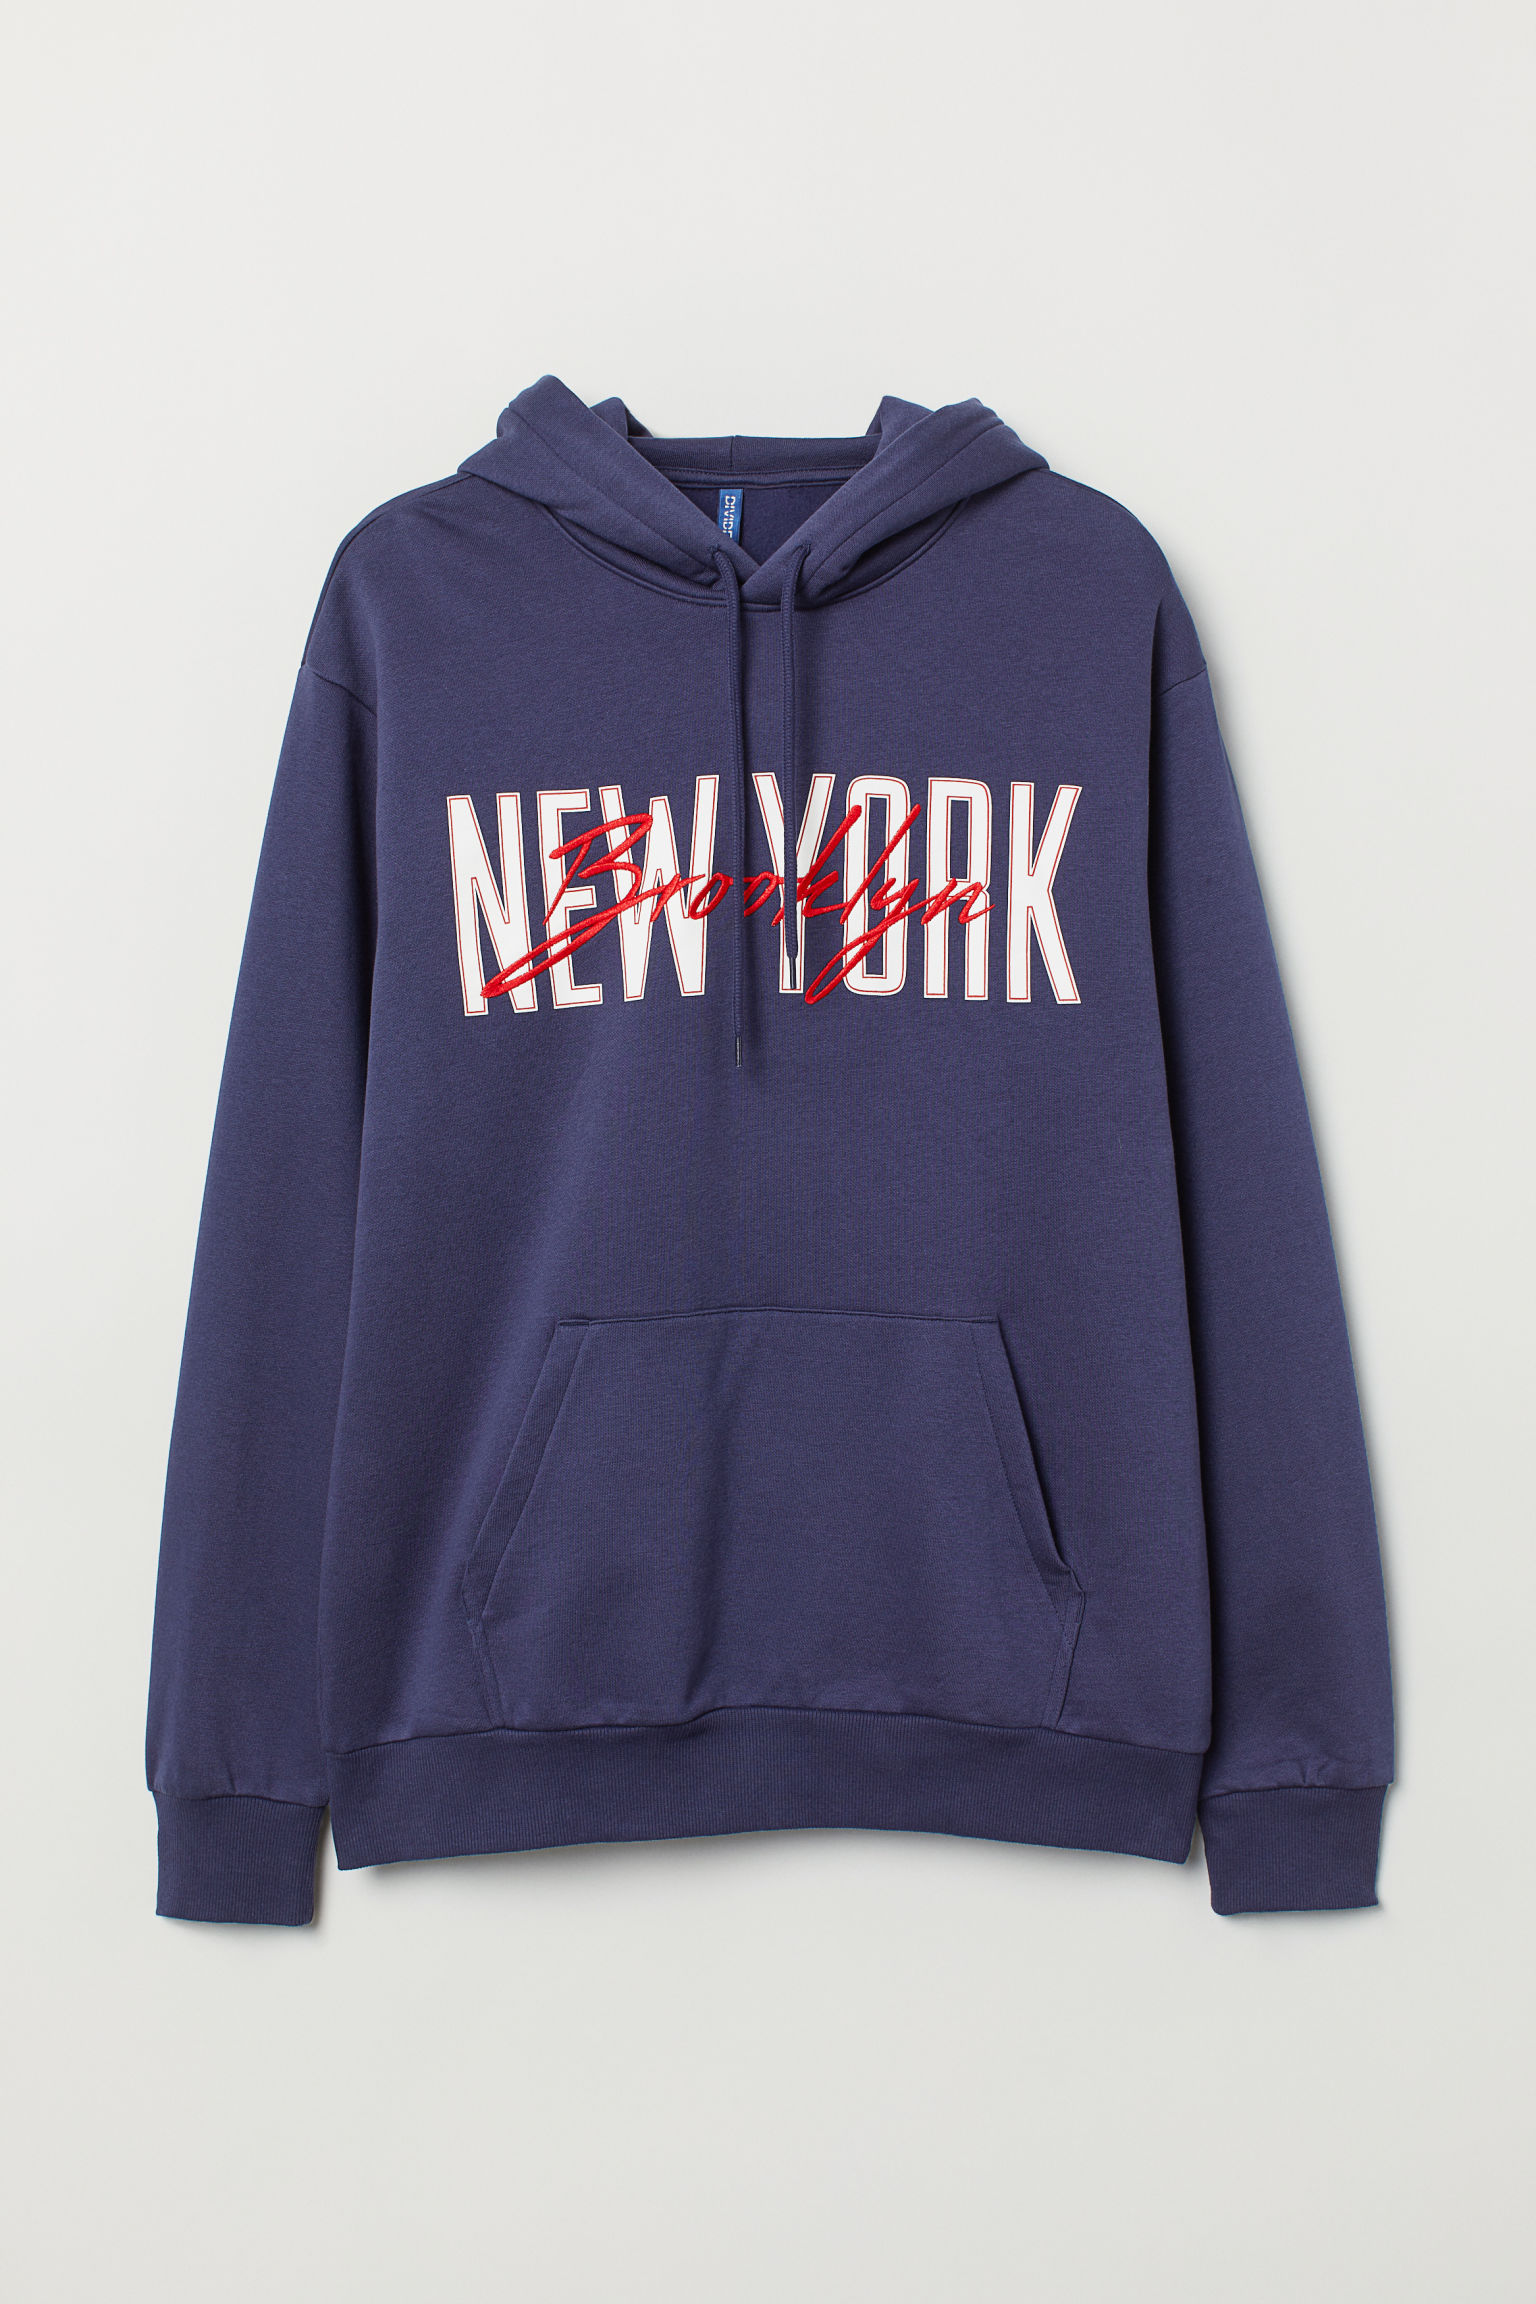 New York Subway Map Jumpers.Hooded Jumper